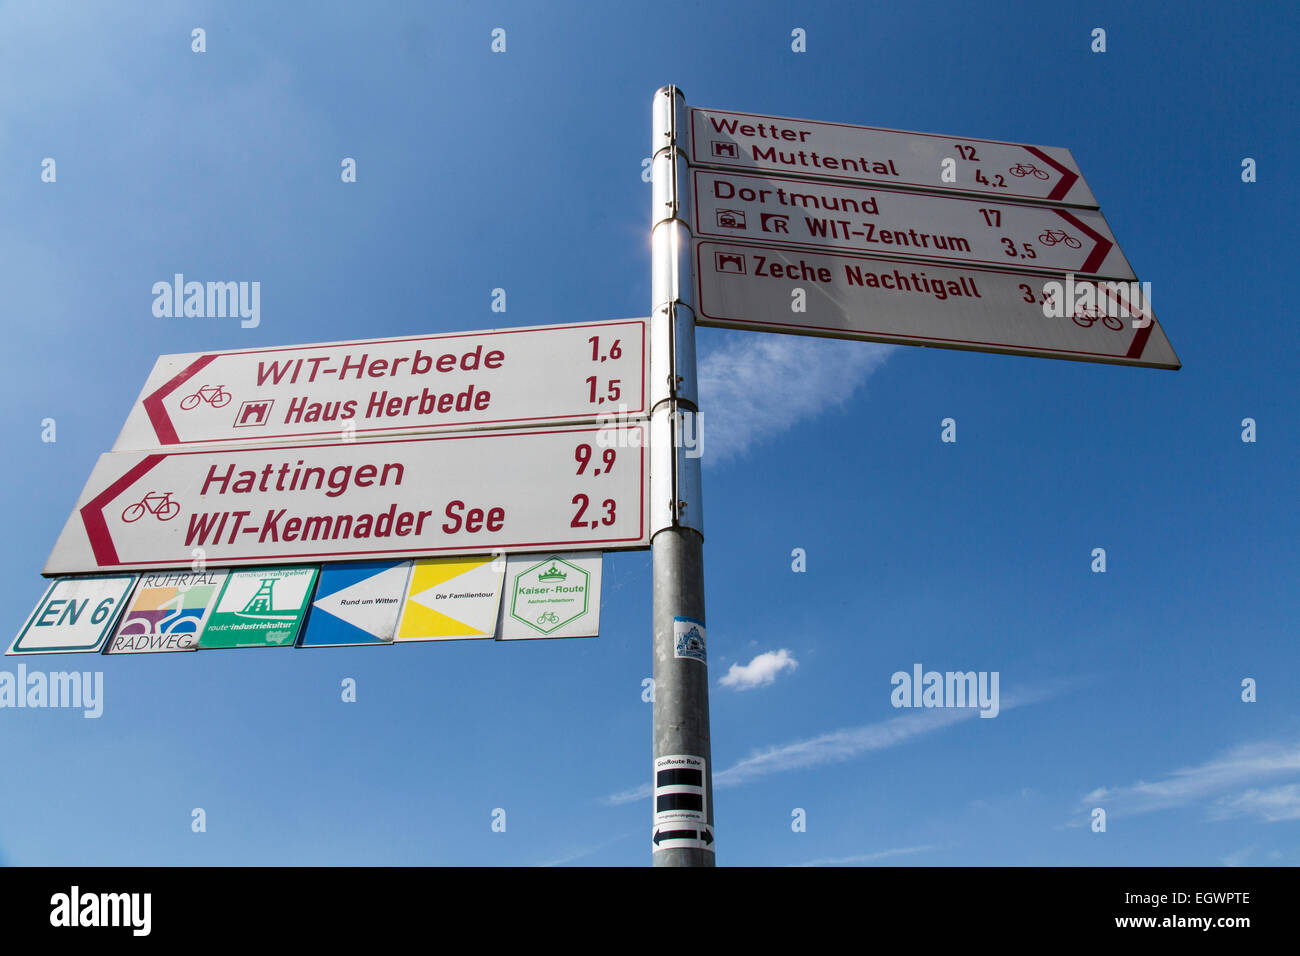 Signpost for different bike routes through the Ruhr region, 'Ruhr valley bike route' - Stock Image